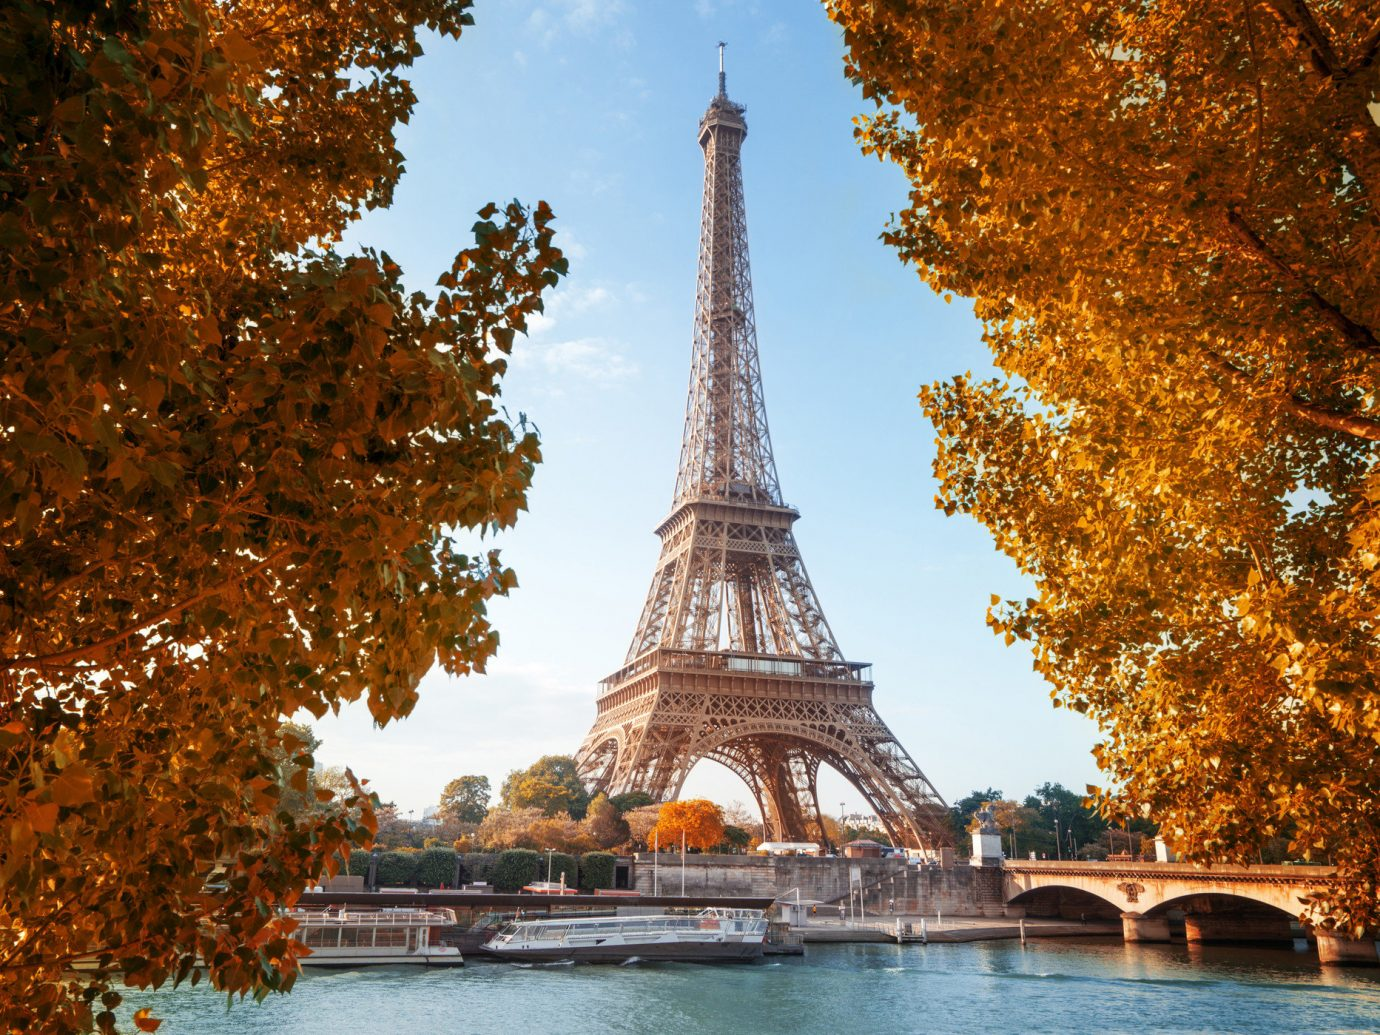 Budget Style + Design Trip Ideas tree outdoor water reflection landmark River season autumn leaf woody plant tower pagoda evening wat place of worship temple traveling